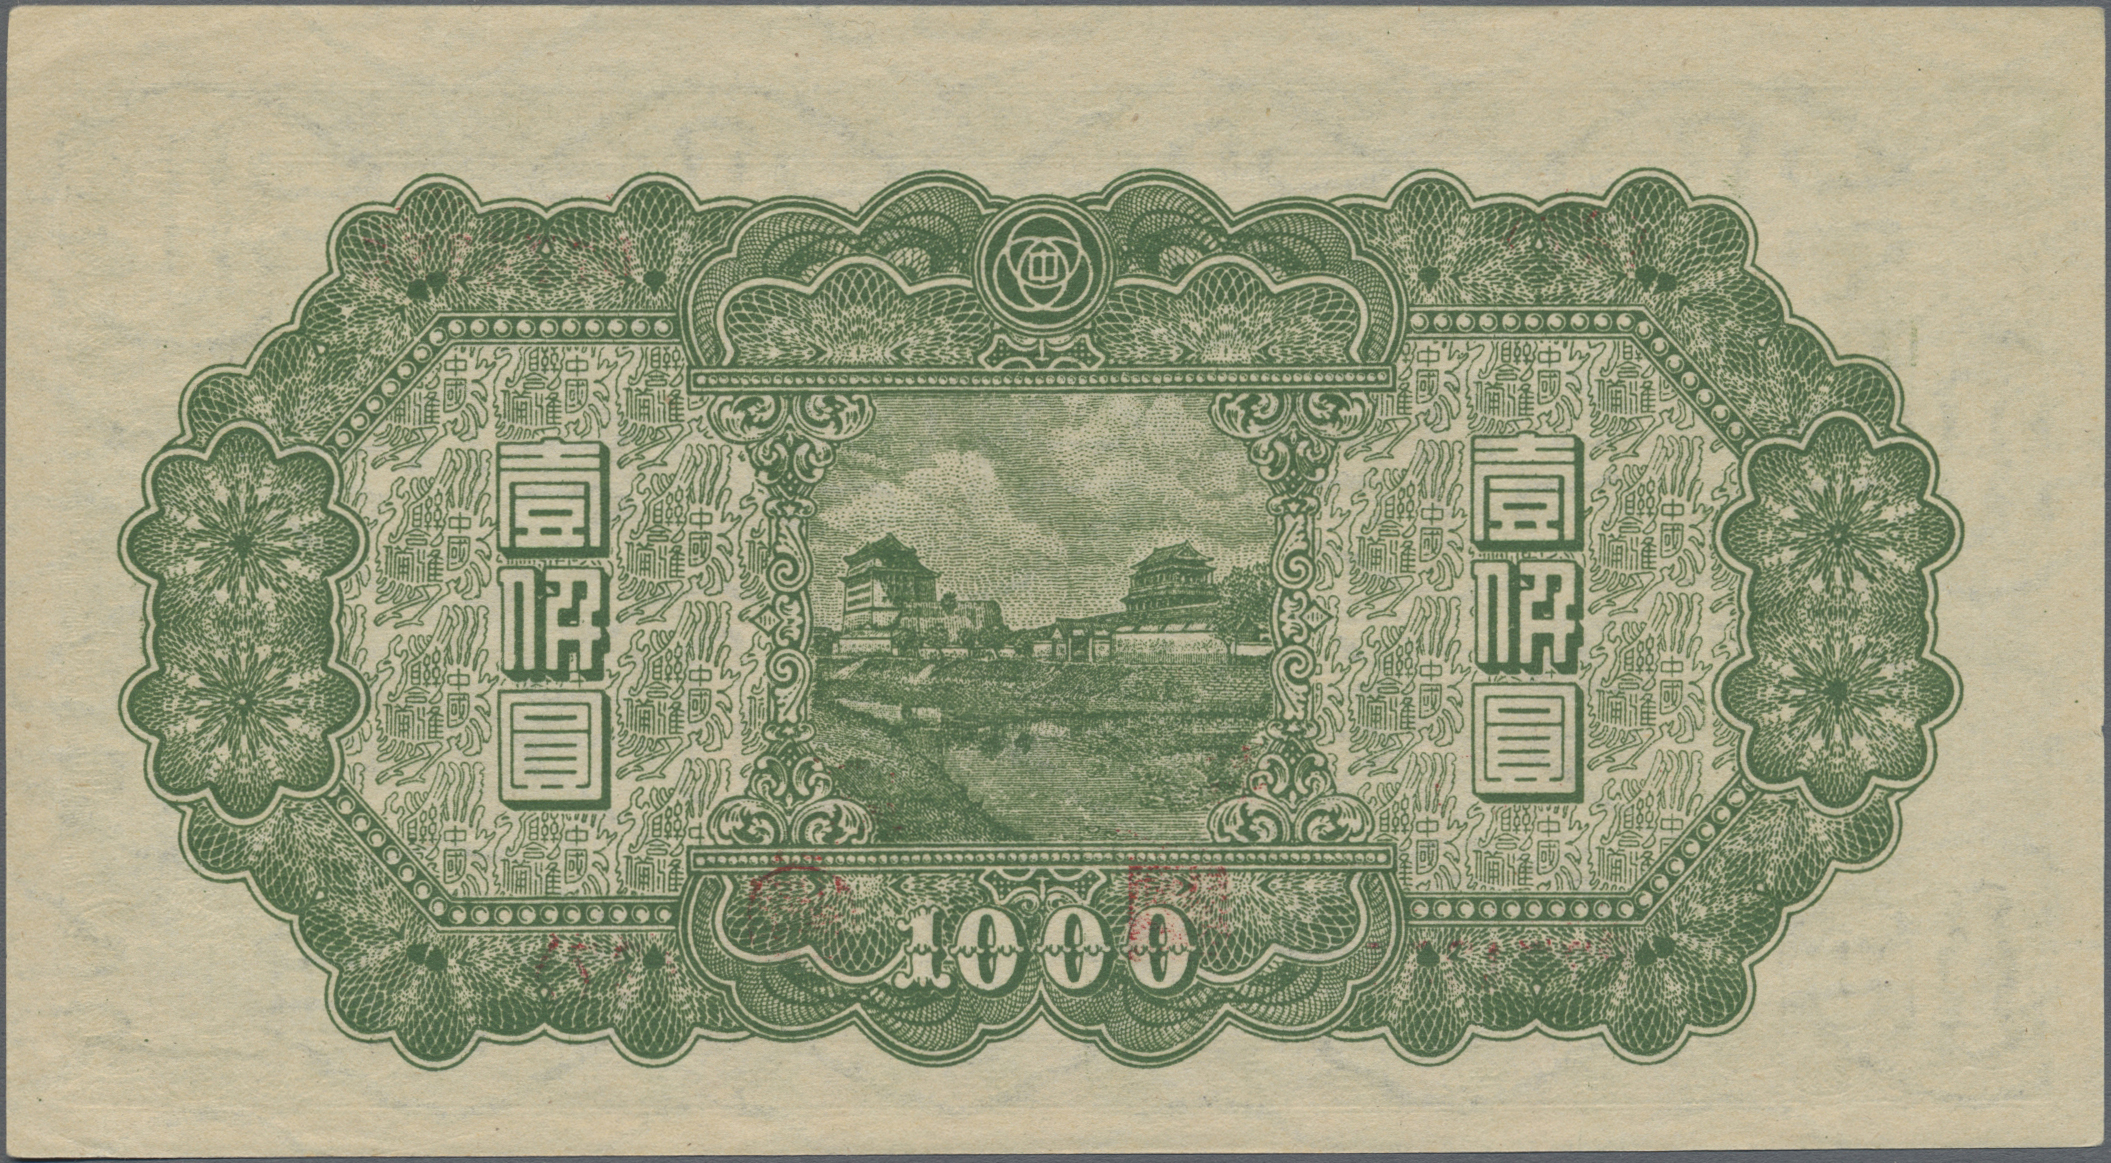 Lot 00138 - China | Banknoten  -  Auktionshaus Christoph Gärtner GmbH & Co. KG Sale #48 The Banknotes